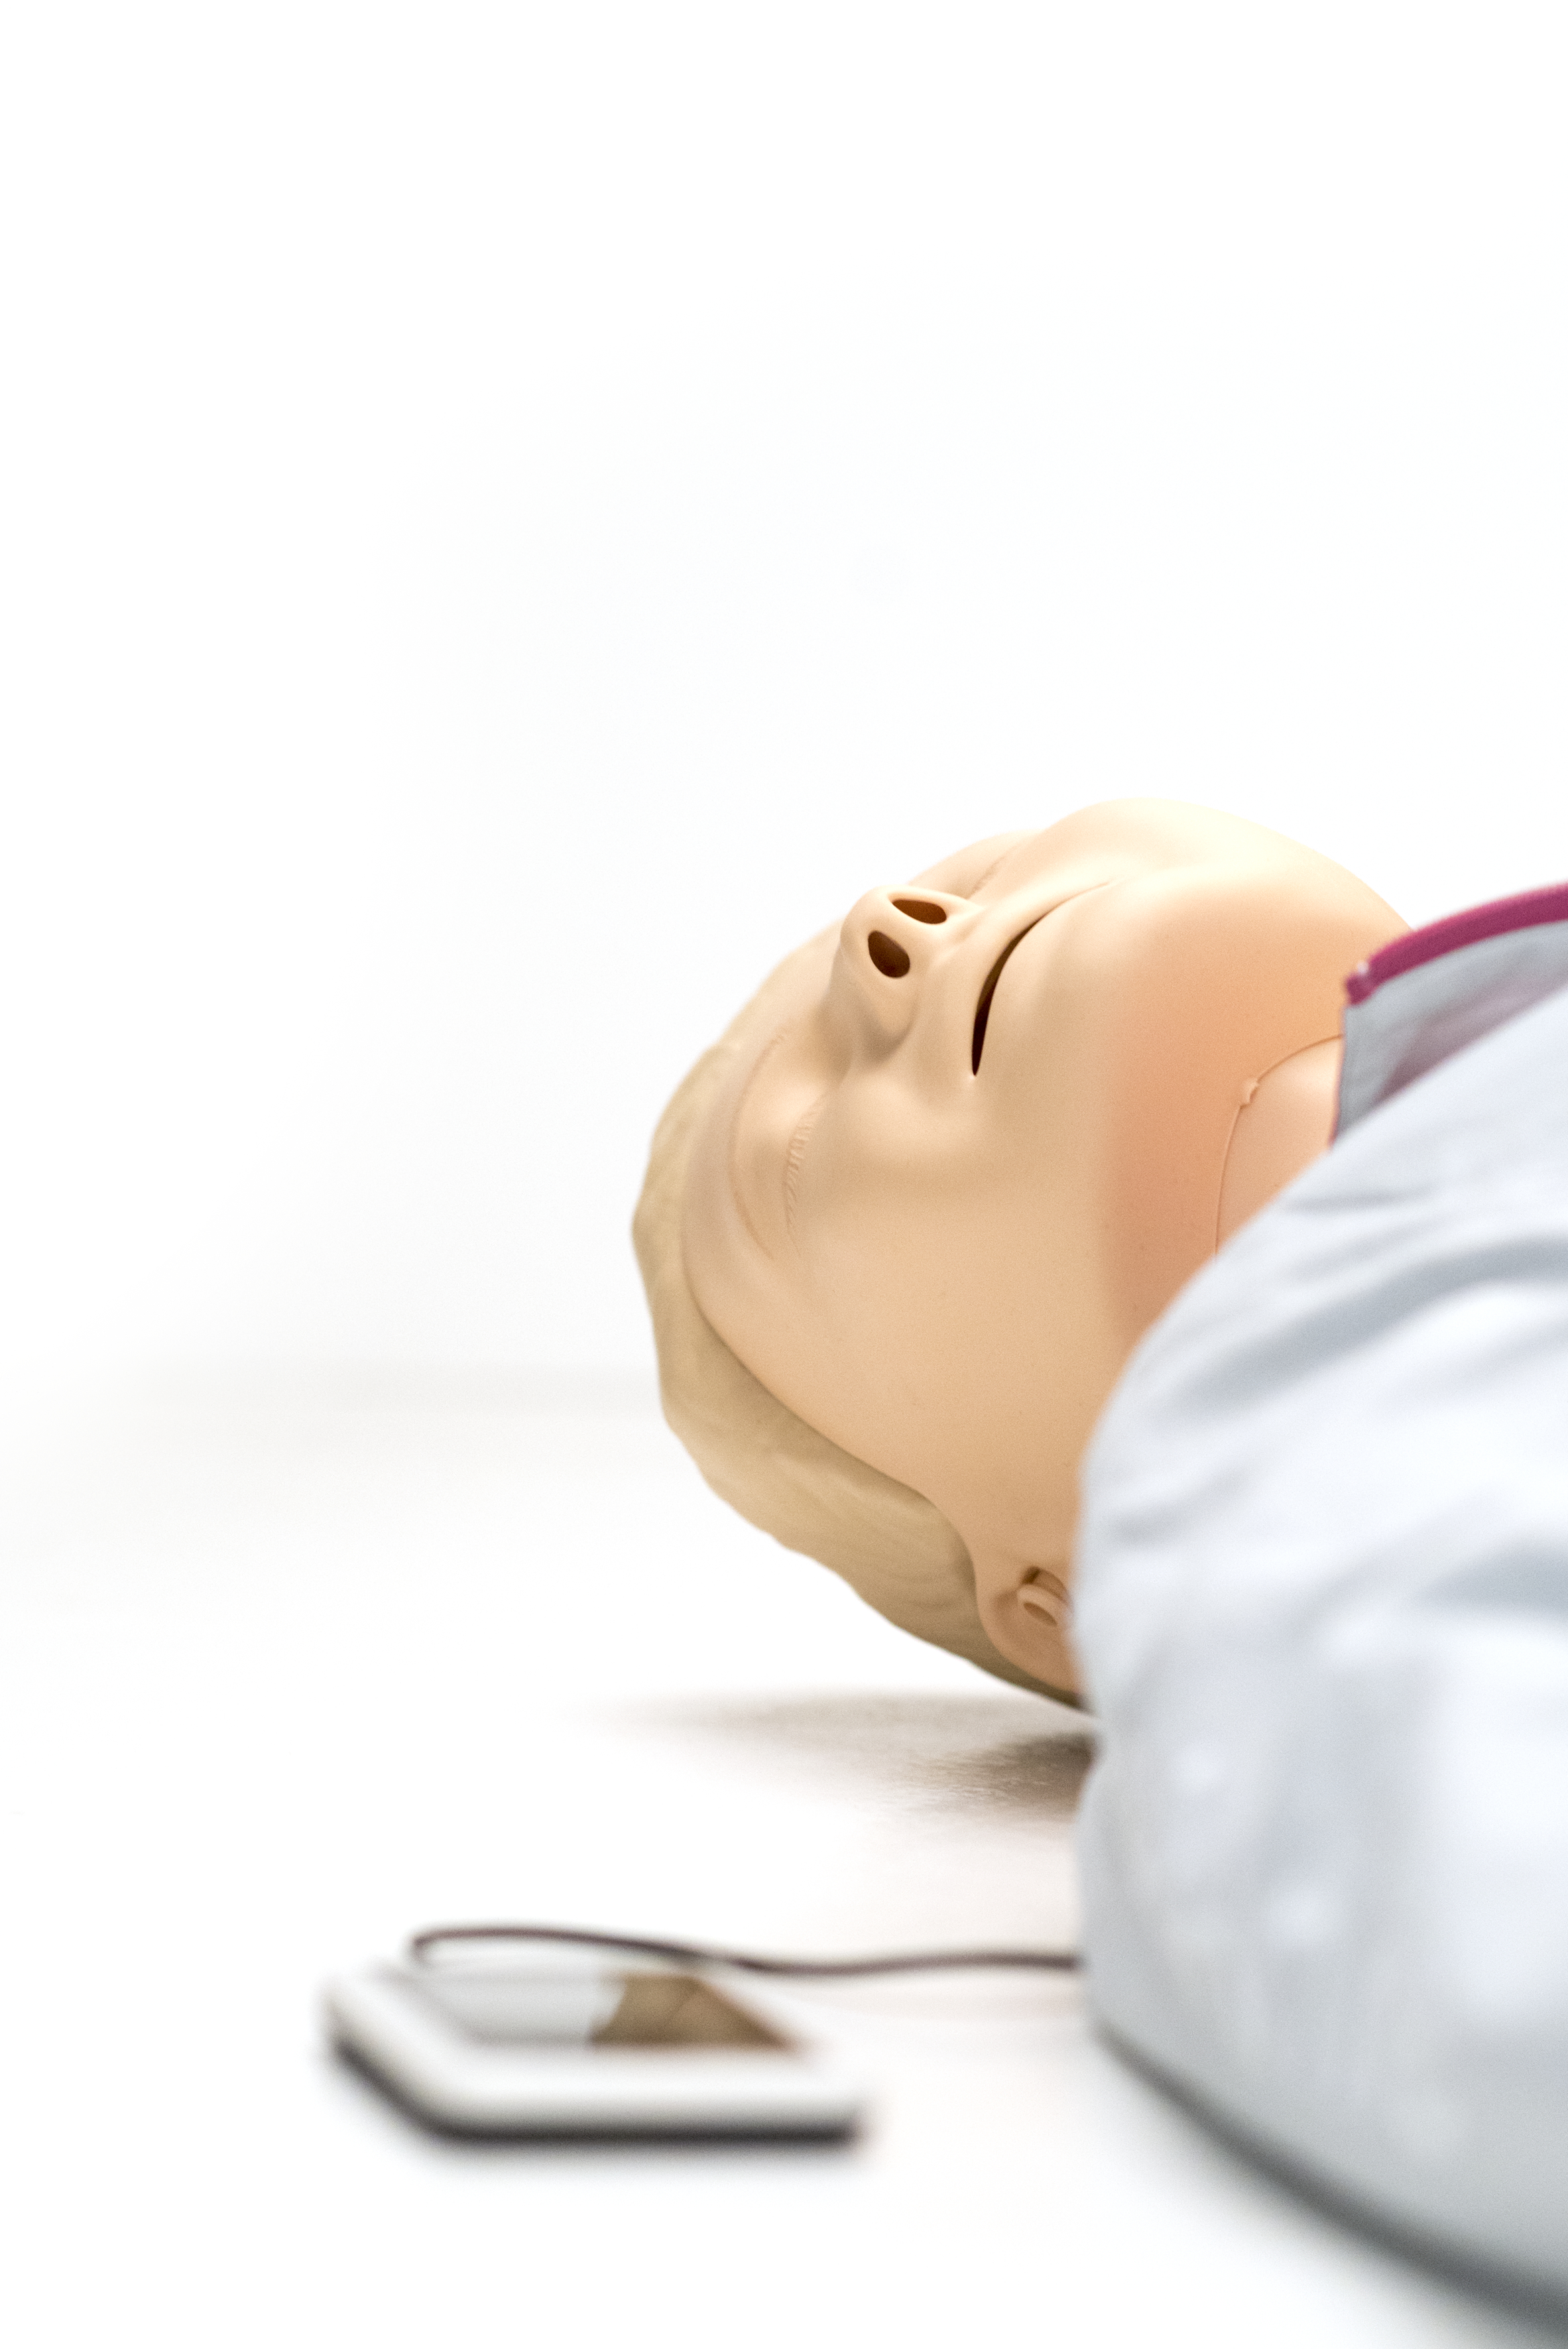 Resusci Anne QCPR AED AW